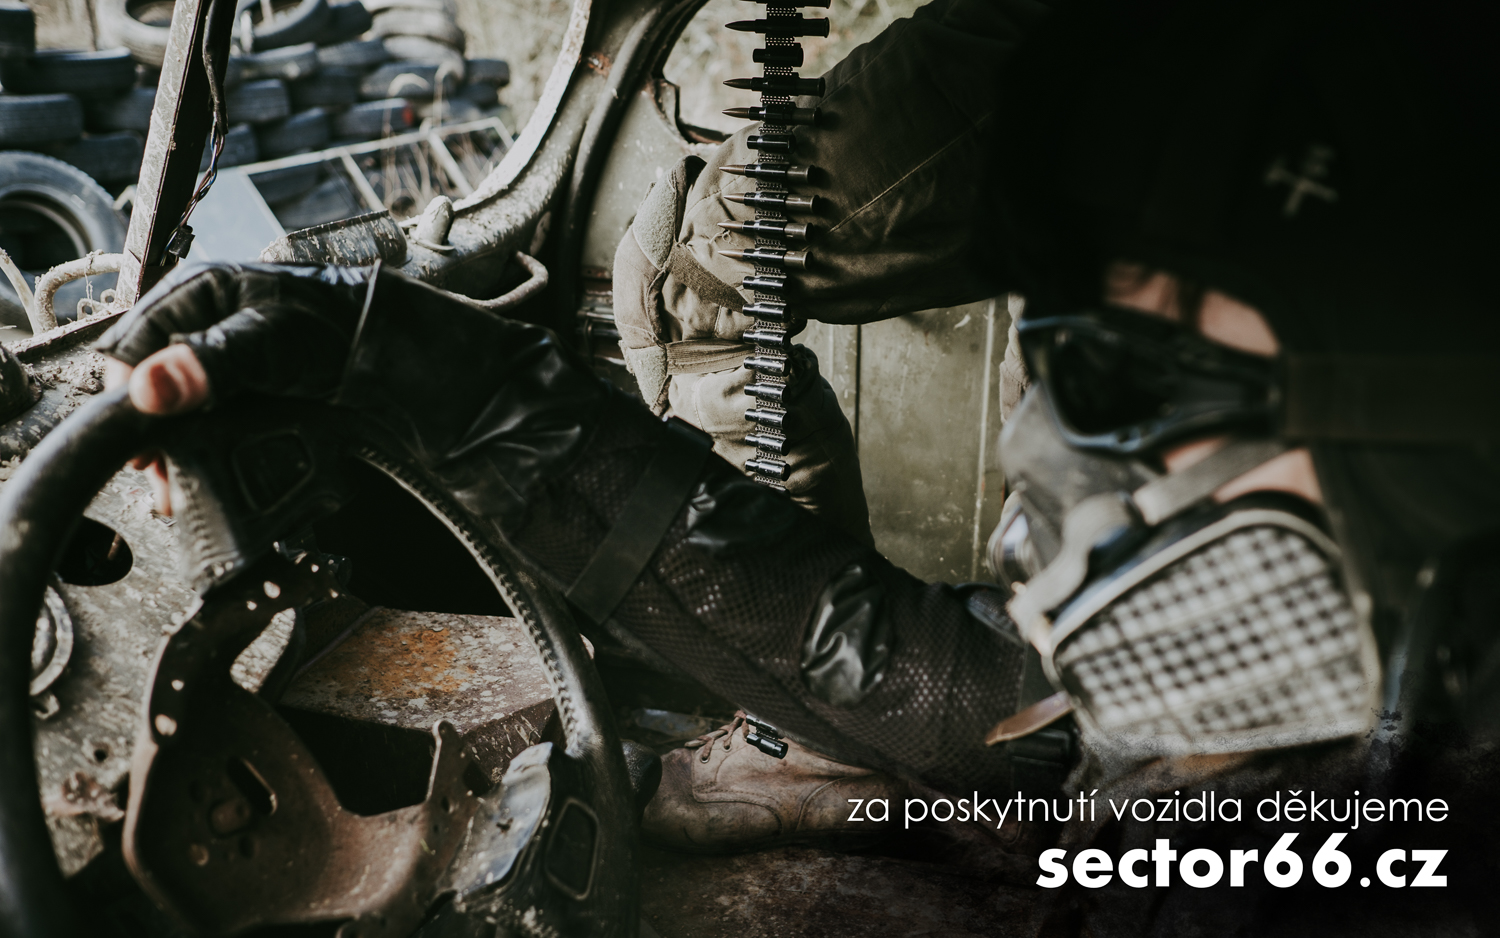 http://sector66.cz/discover